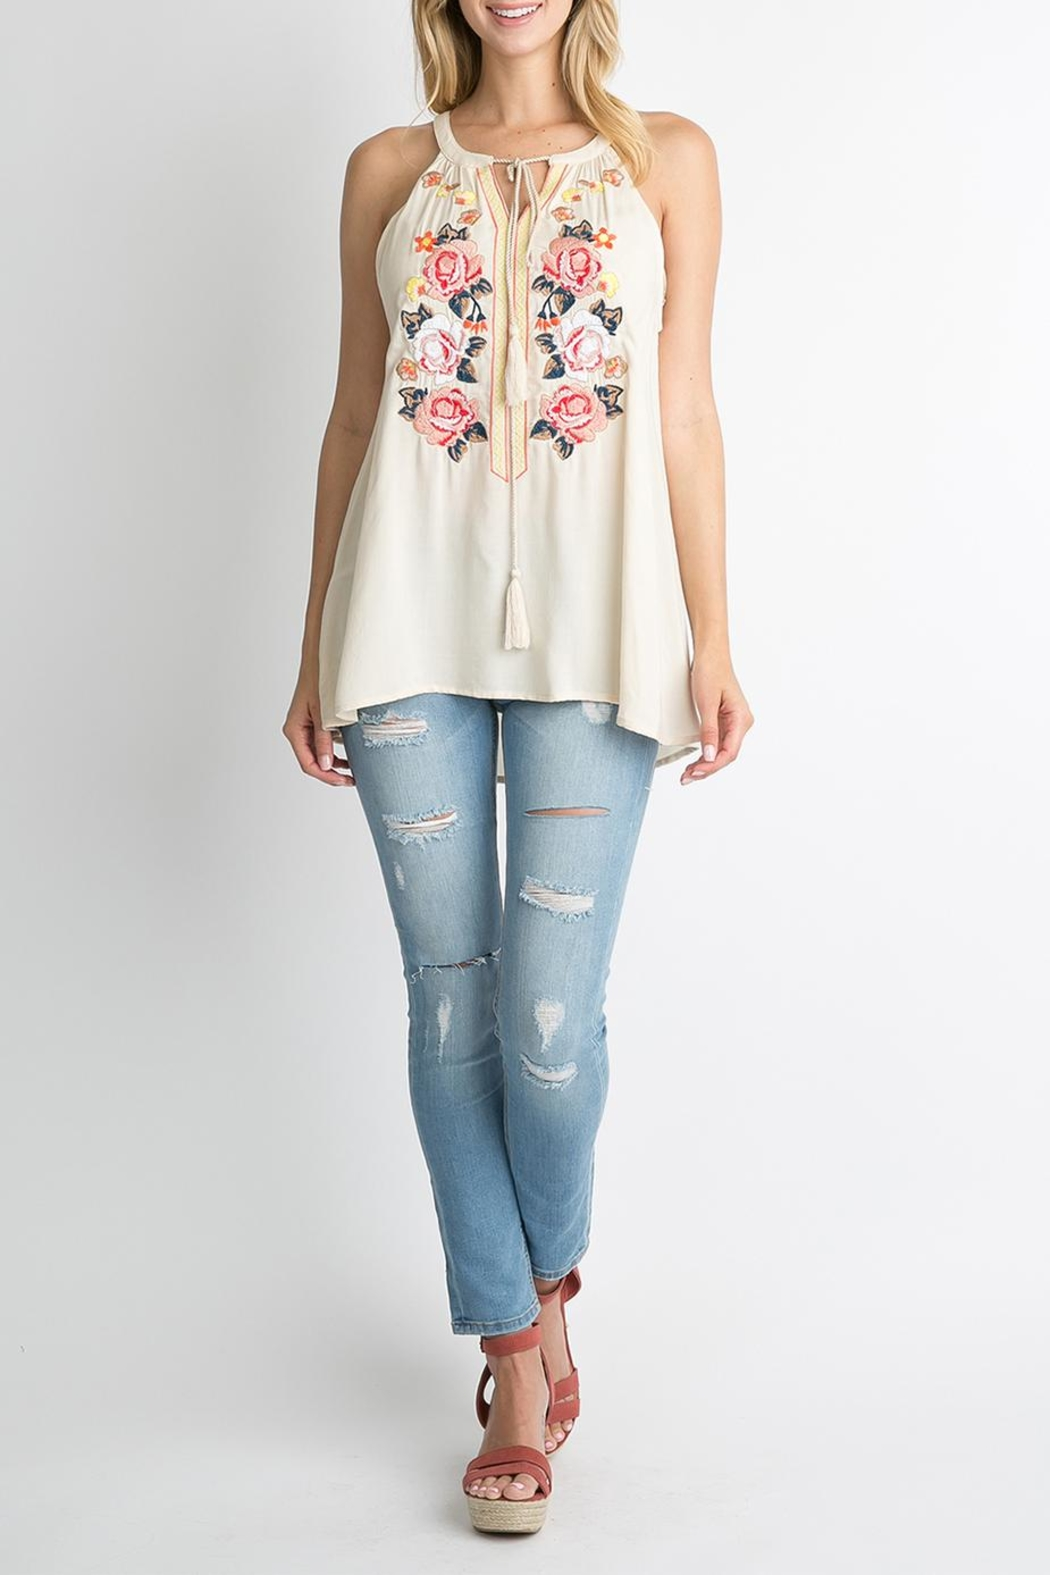 Andree by Unit White Floral Top - Front Cropped Image